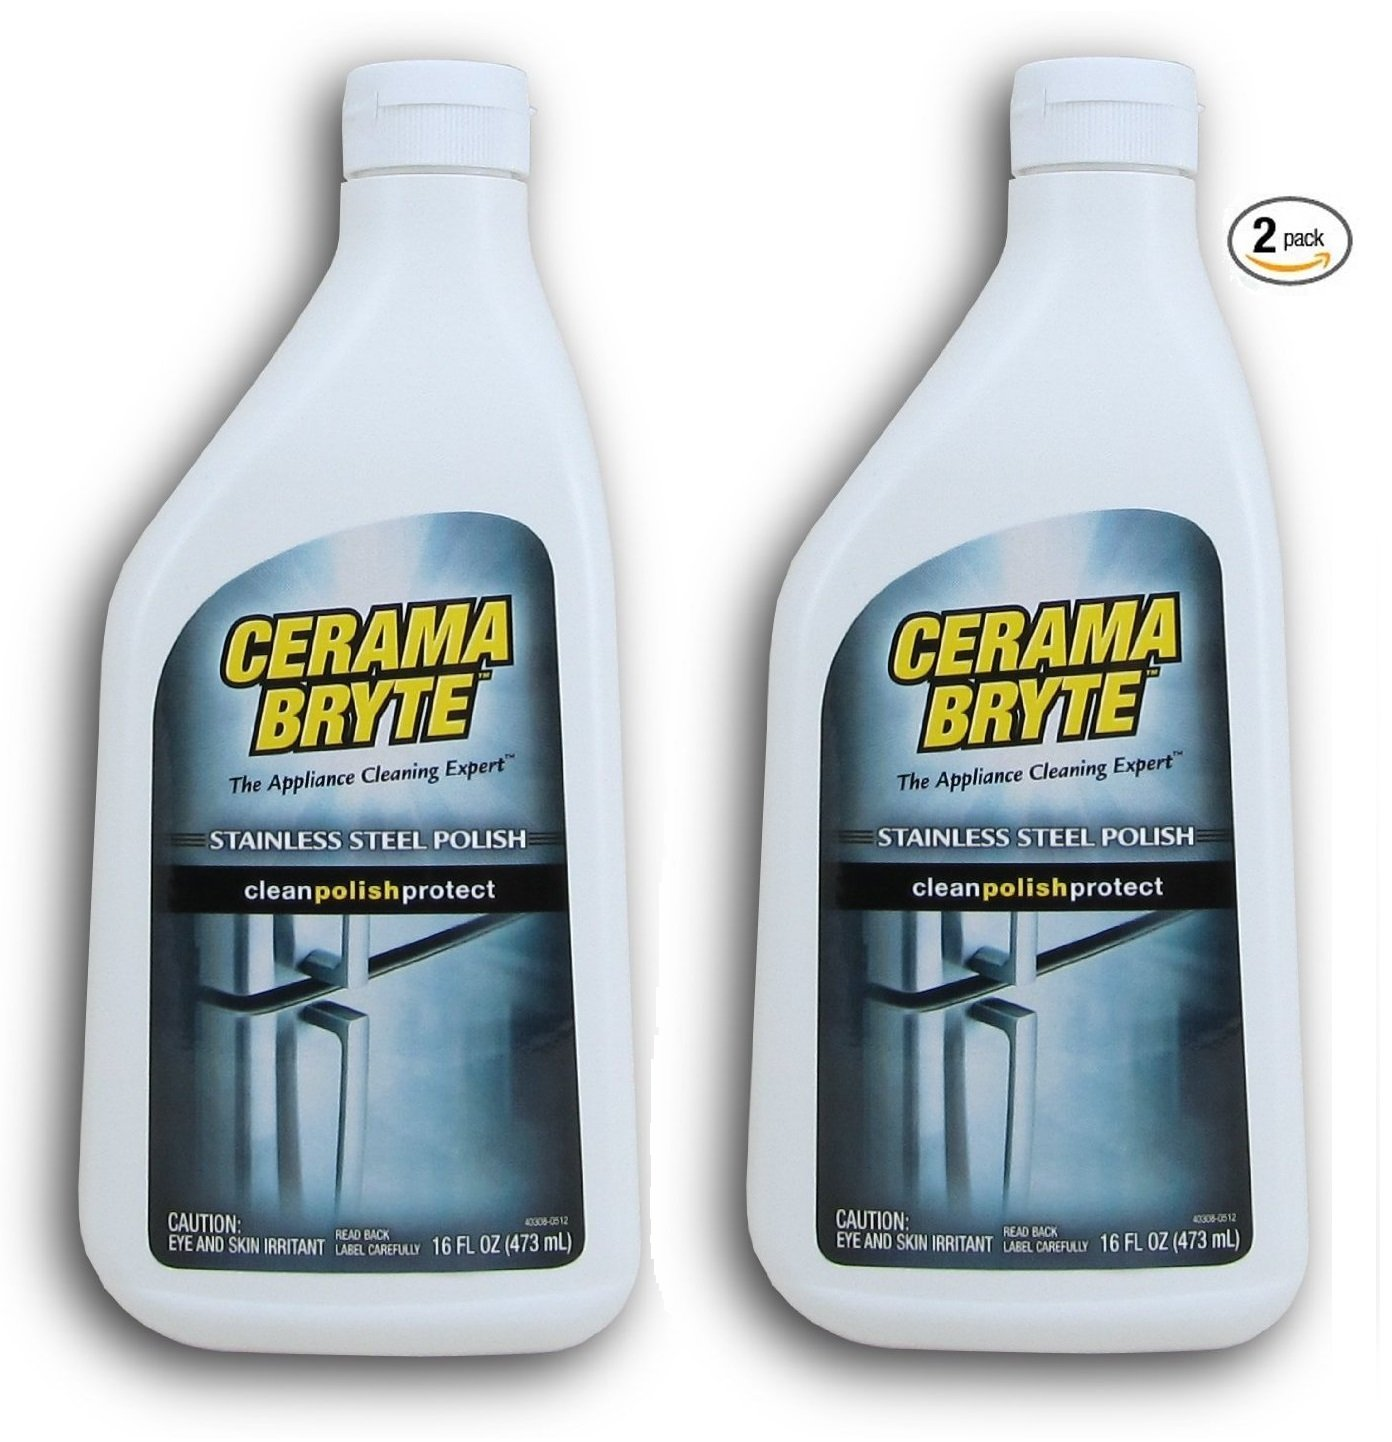 Cerama Bryte Stainless Steel Cleaning Polish (with Mineral Oil), 2 Pack 16oz each by Cerama Bryte